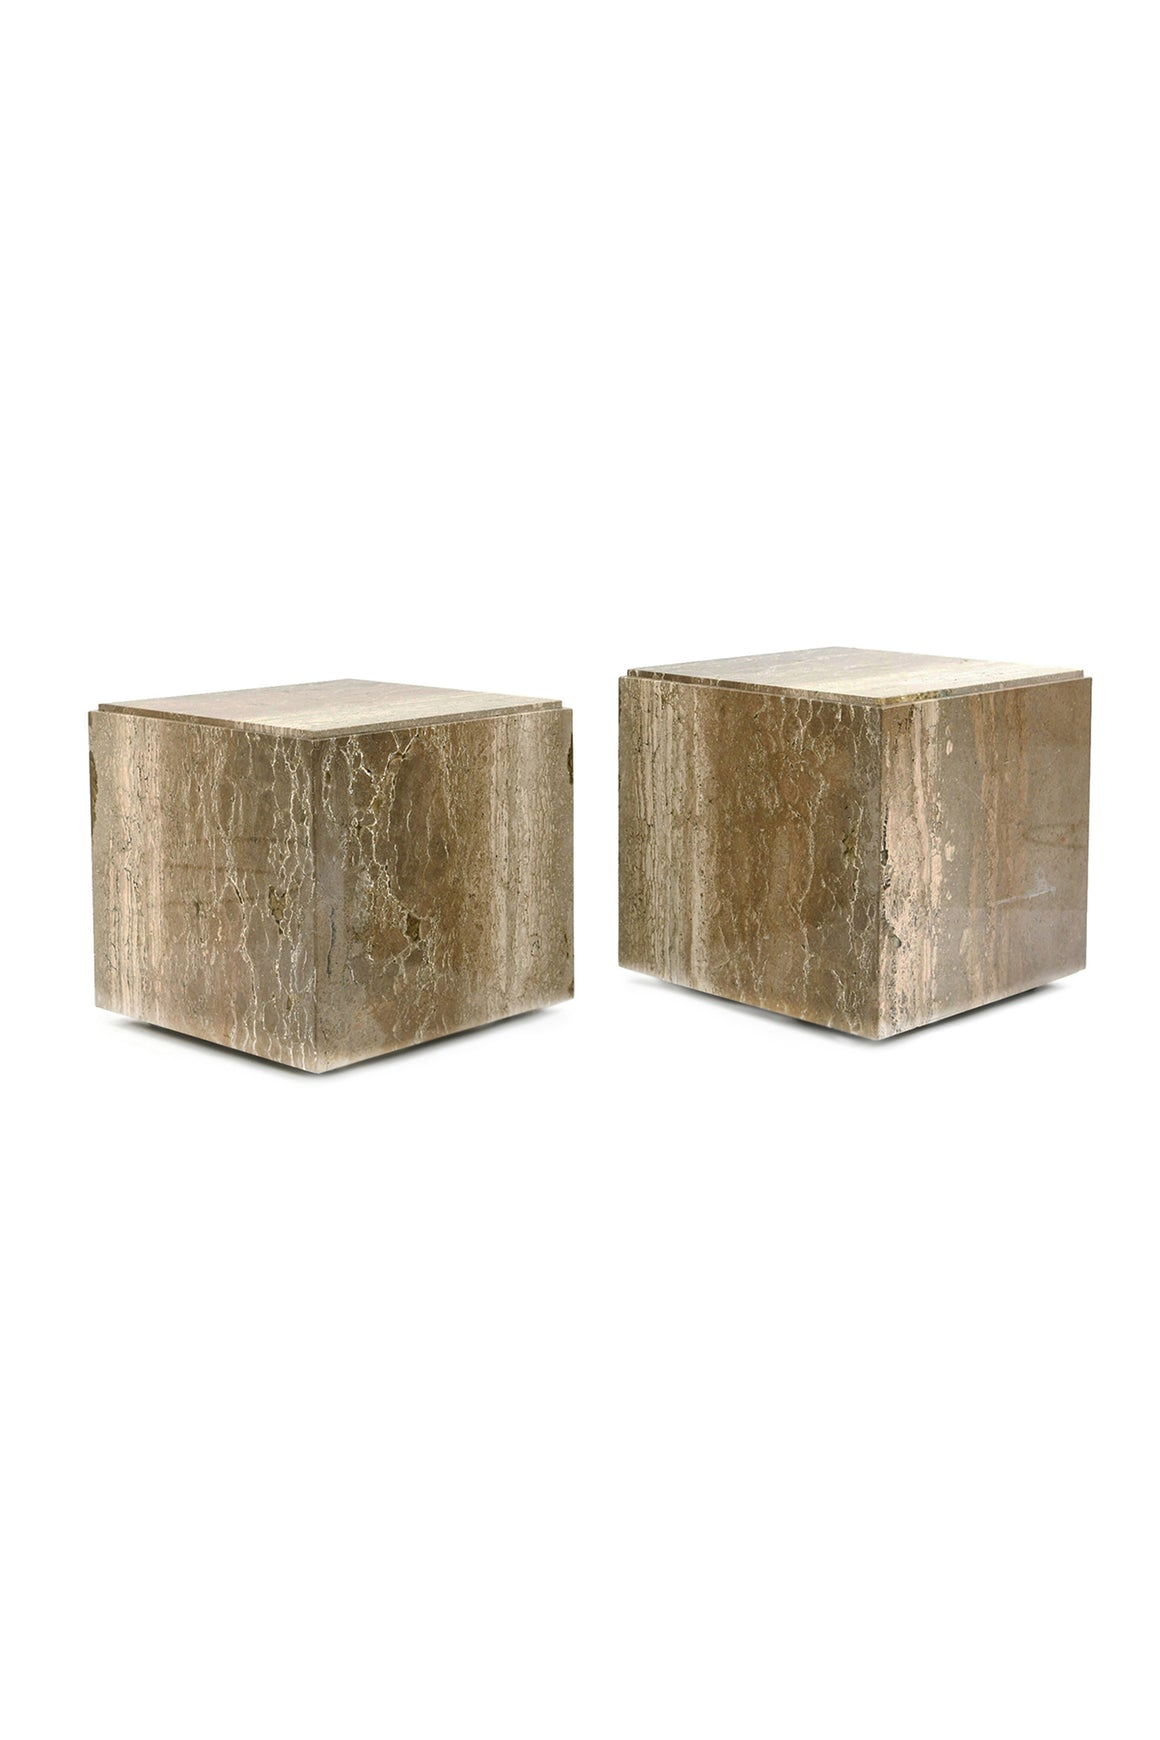 Pair of Travertine Cube Side Tables in the Style of Willy Rizzo